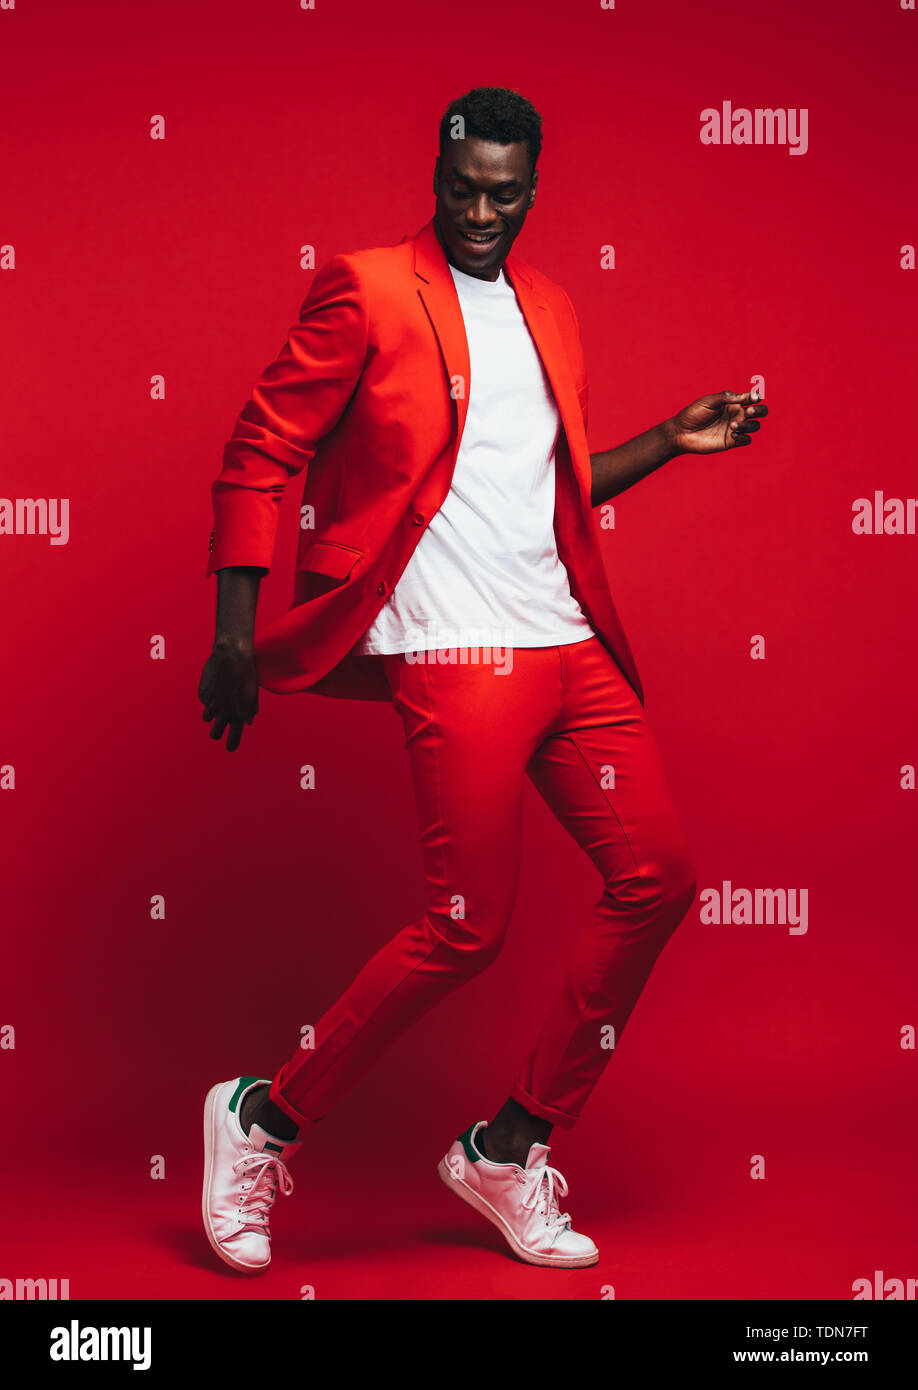 Full length od handsome young african man dancing on red background. Man in stylish red outfit showing some dance moves. - Stock Image